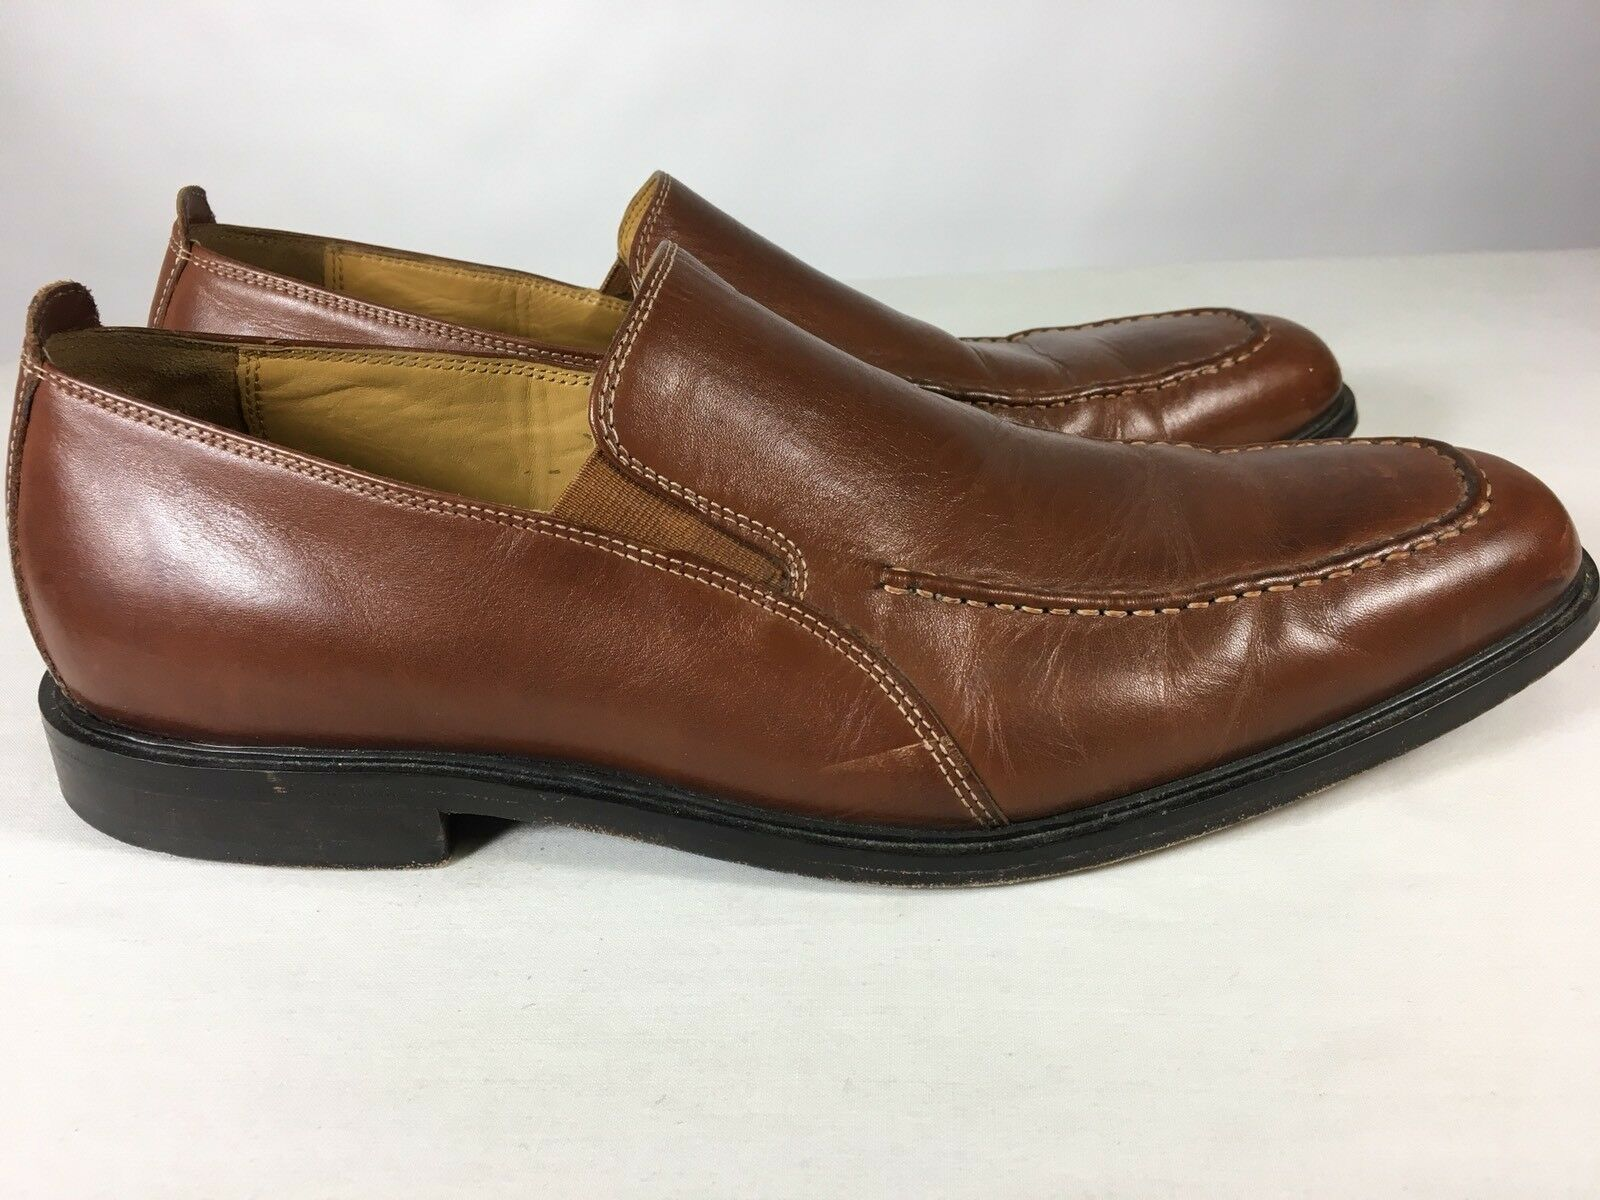 COLE HAAN Mens Brown Leather Moc Toe Loafers shoes Casual SZ 11.5 M